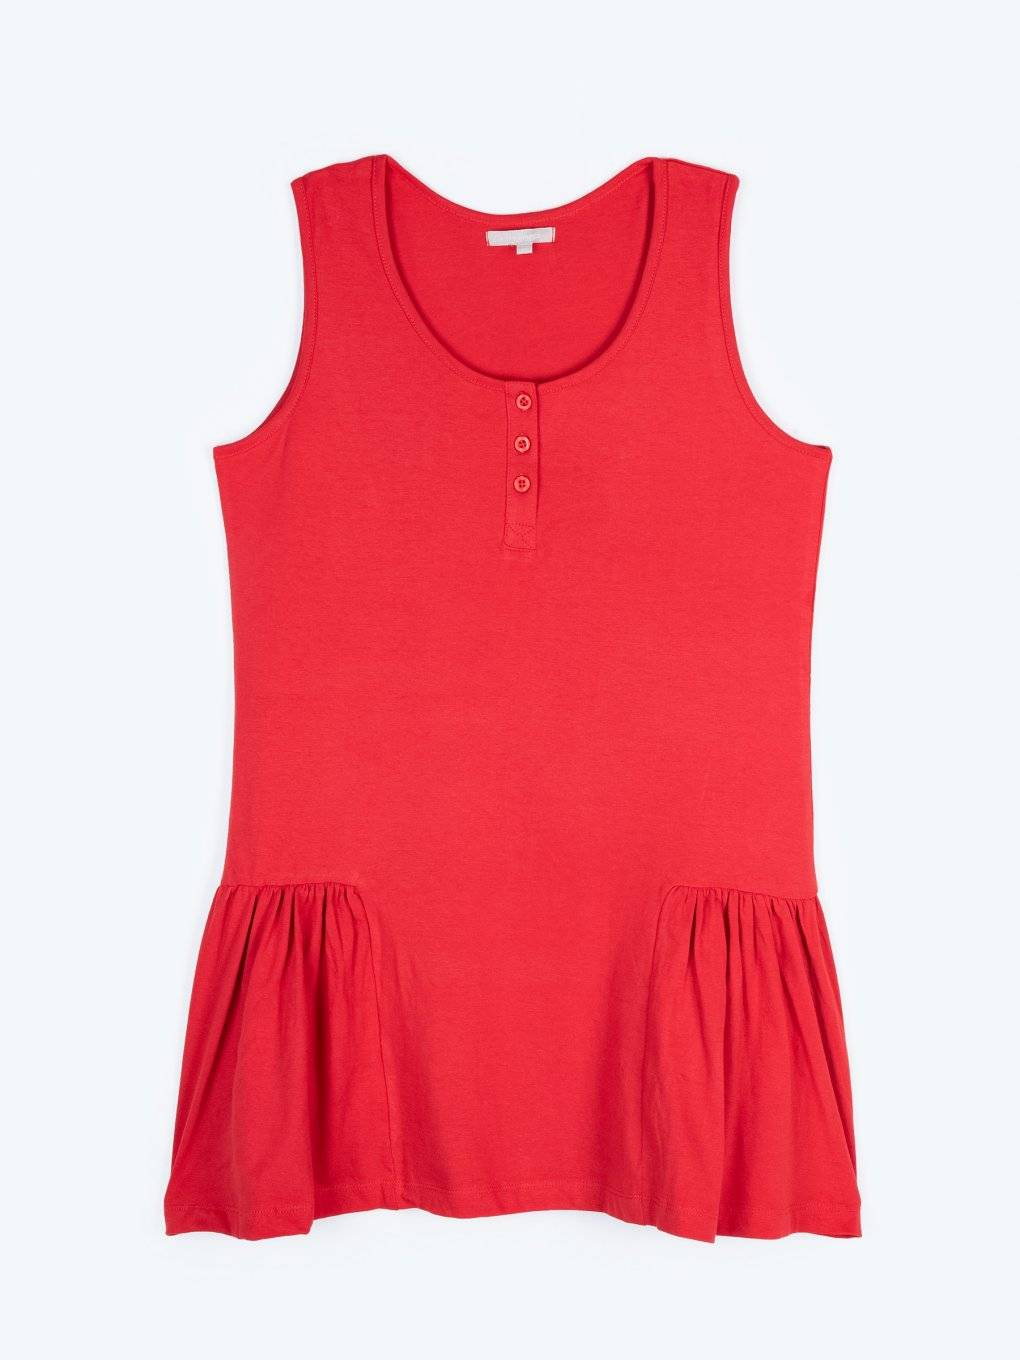 Longline tank top with buttons